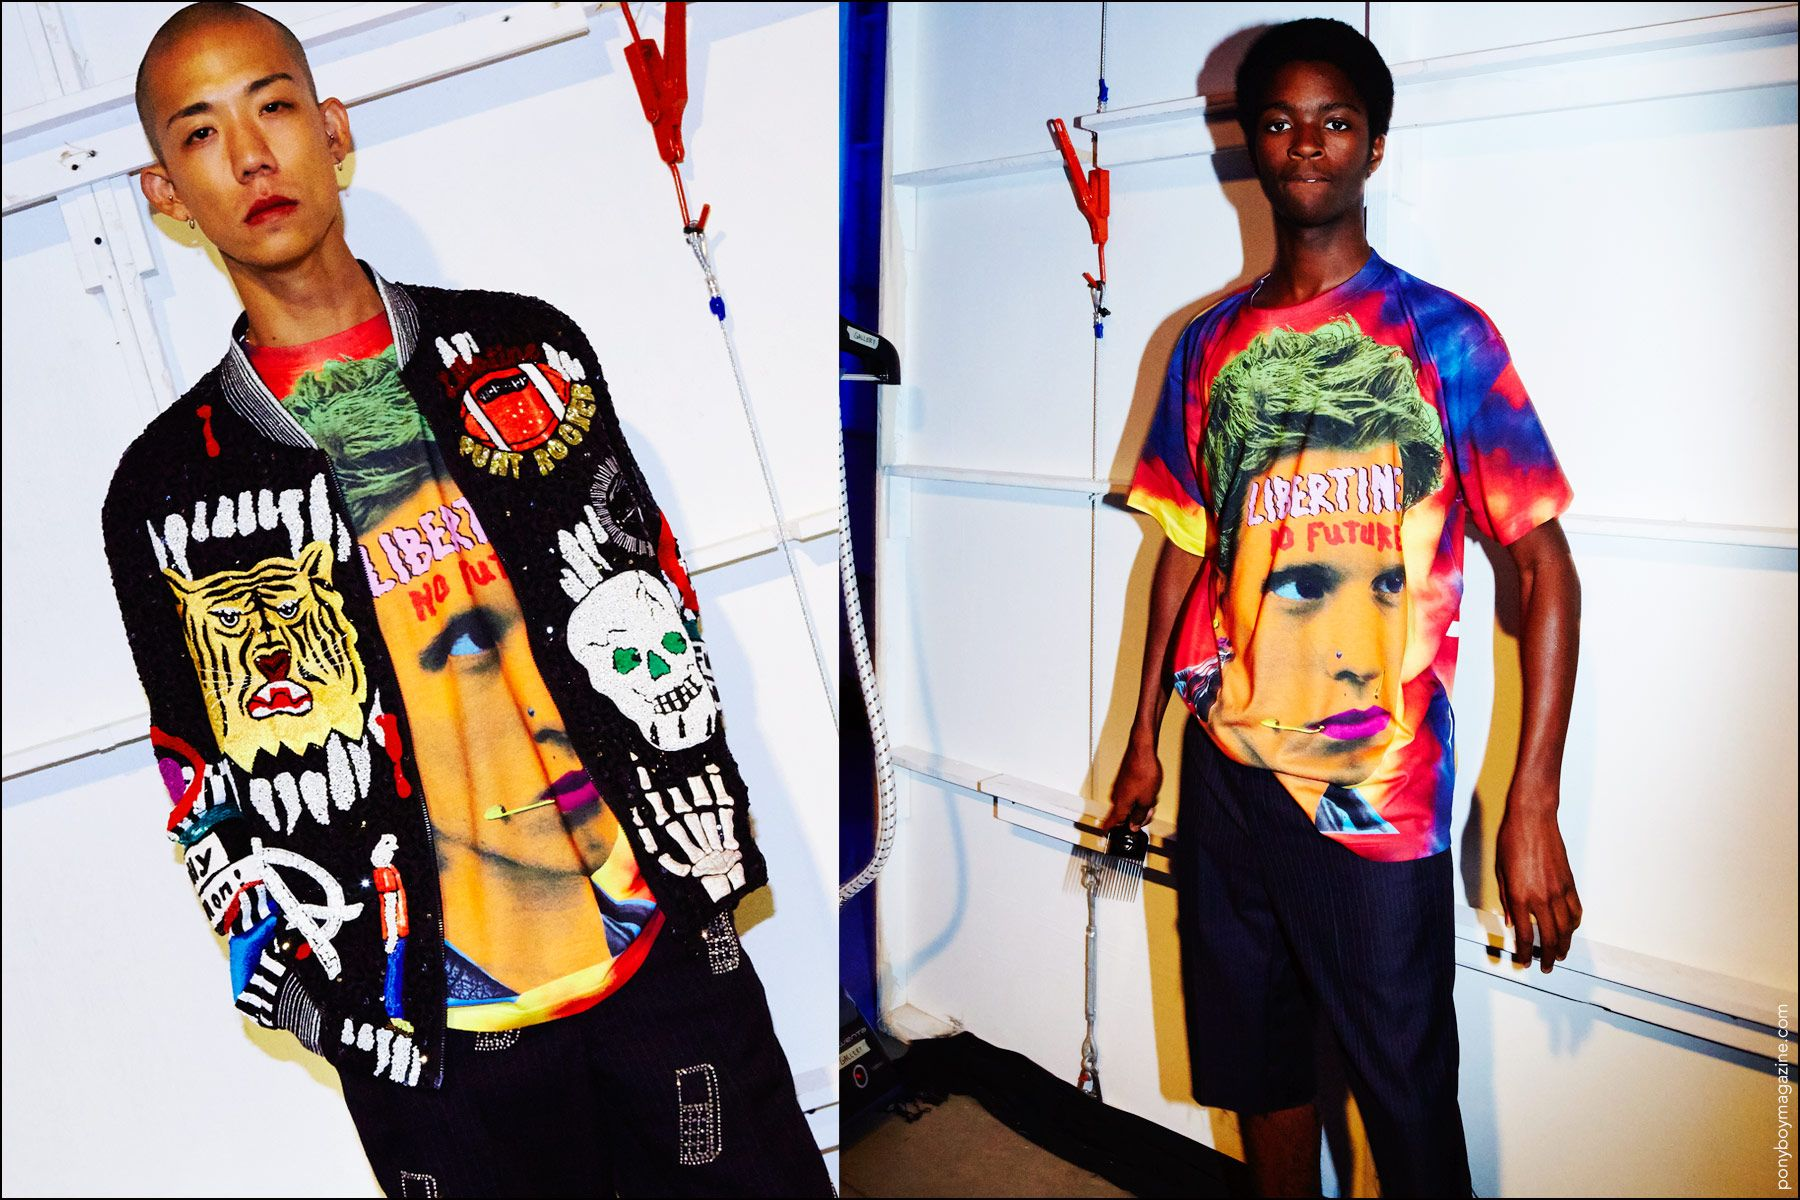 Male models snapped backstage in colorful, graphic clothing at the Libertine S/S17. Photography by Alexander Thompson for Ponyboy magazine in New York City.